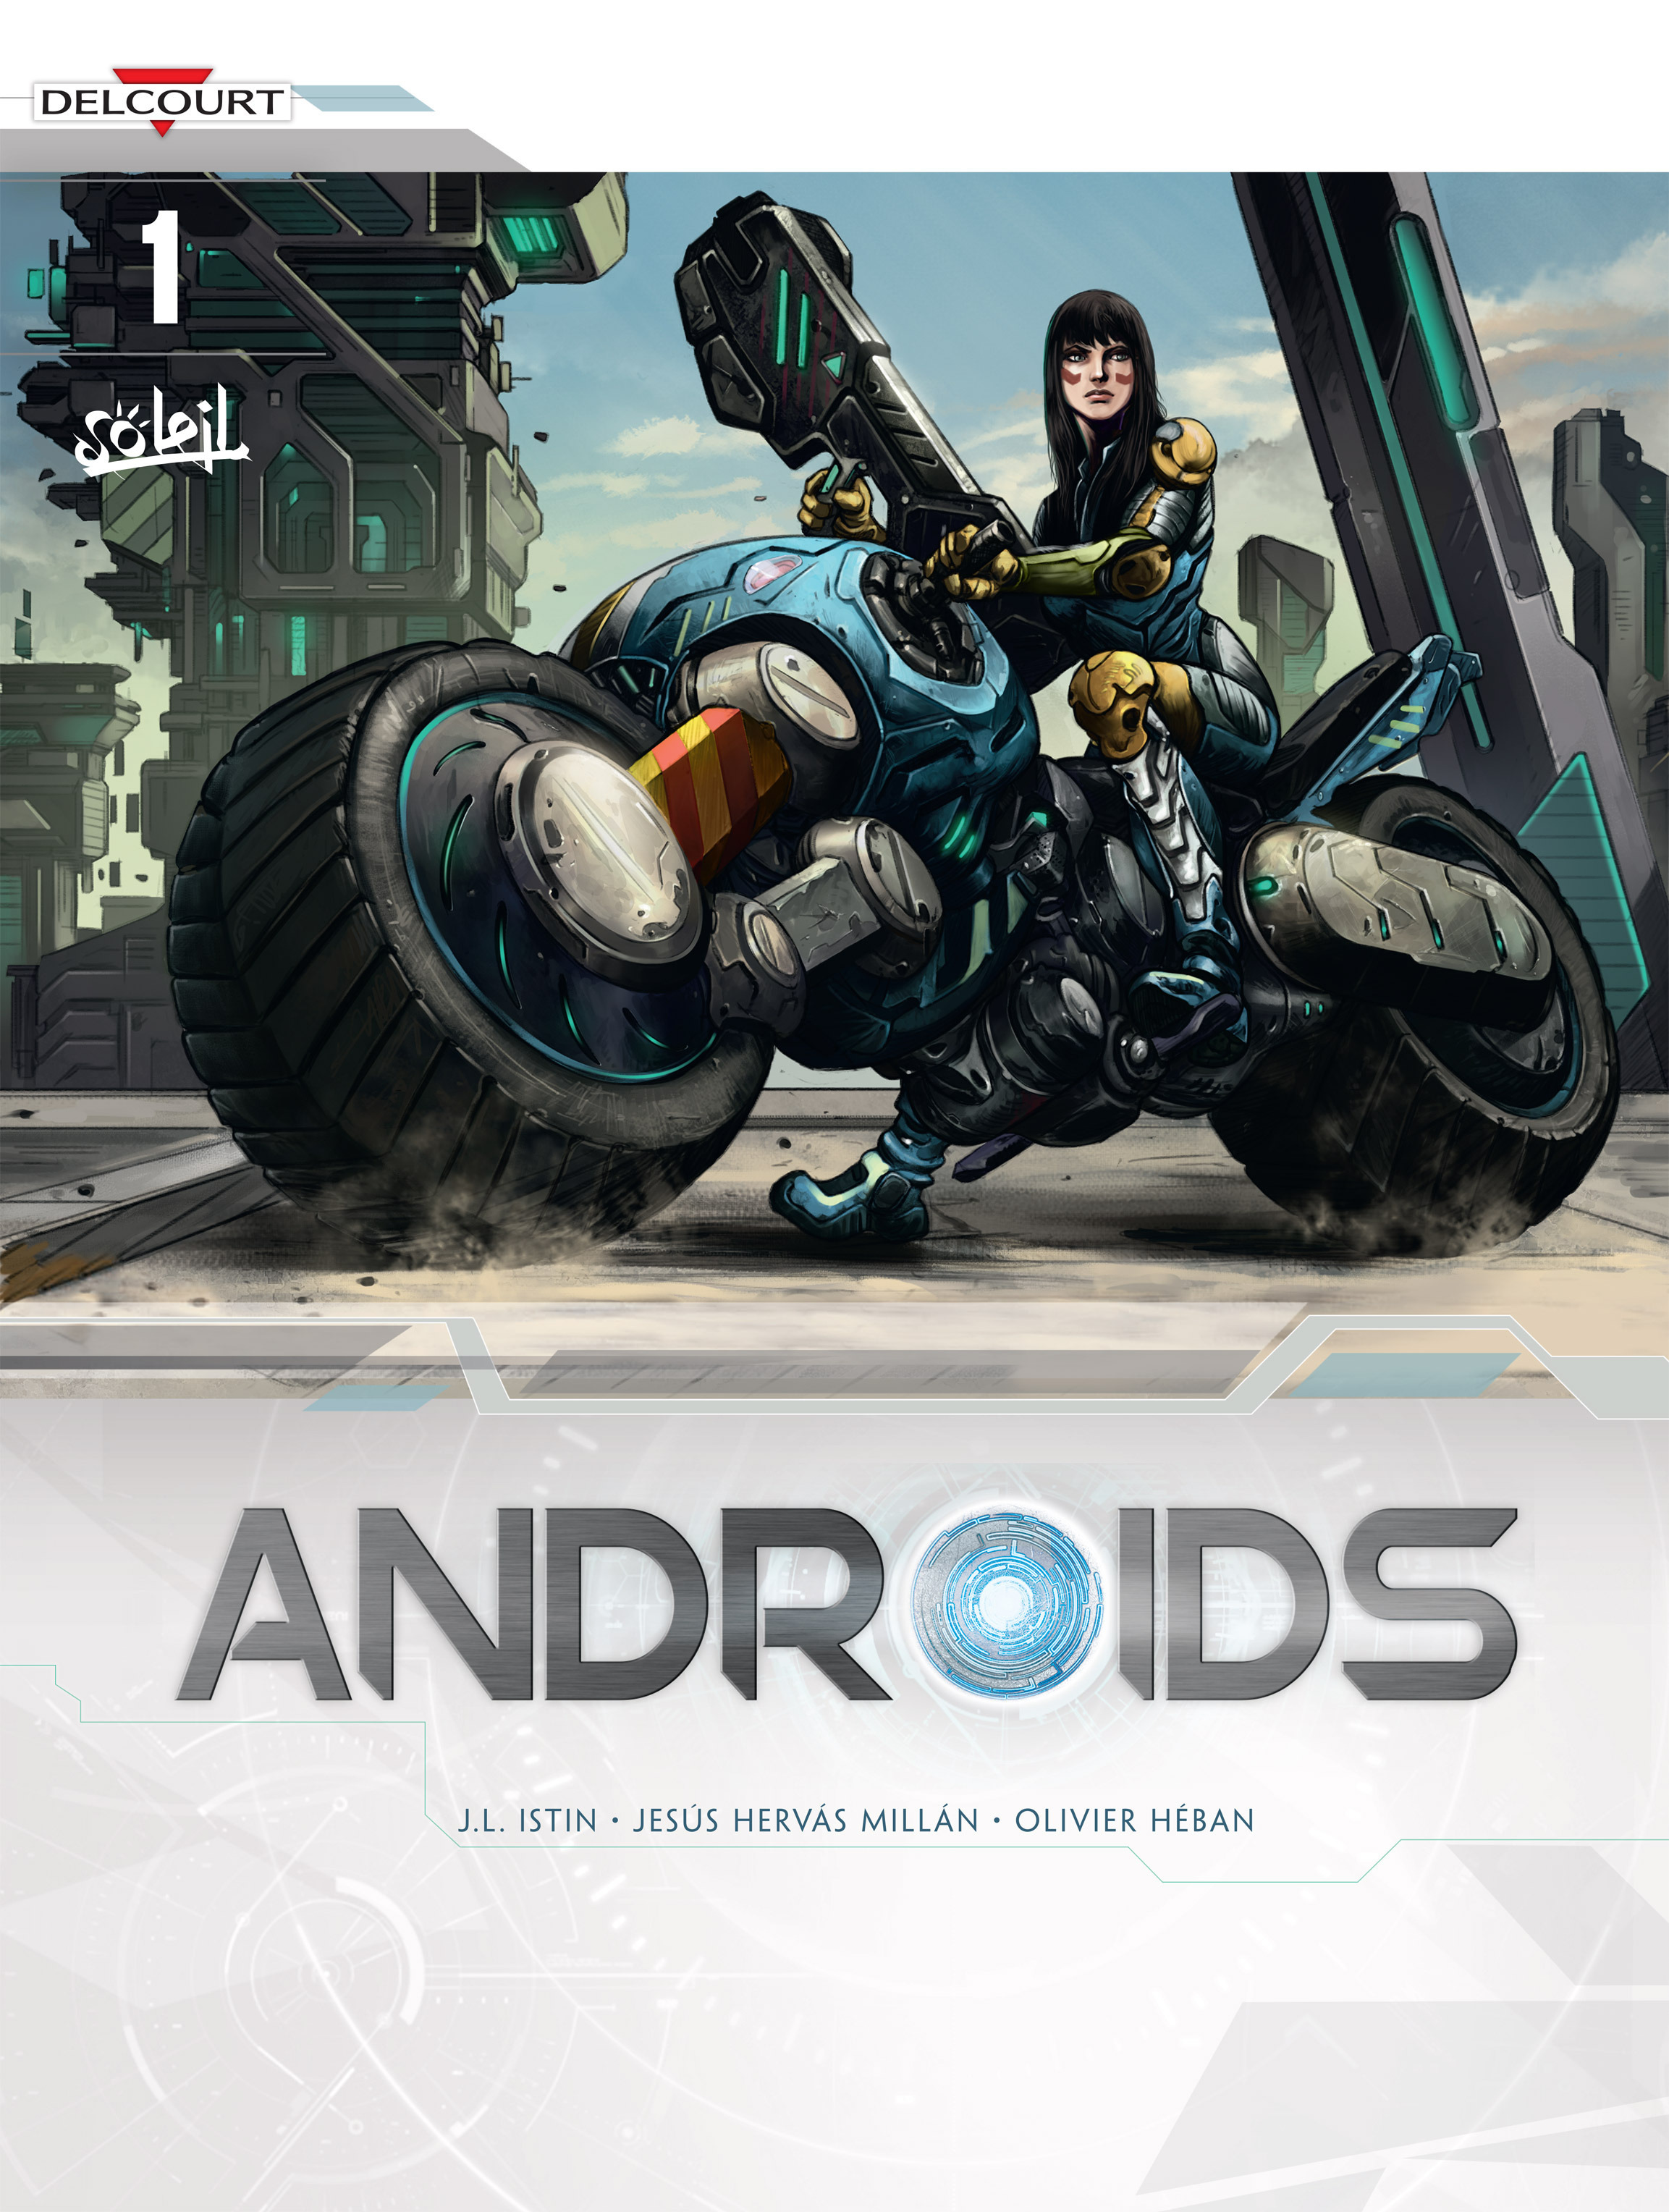 Read online Androïds comic -  Issue #1 - 1